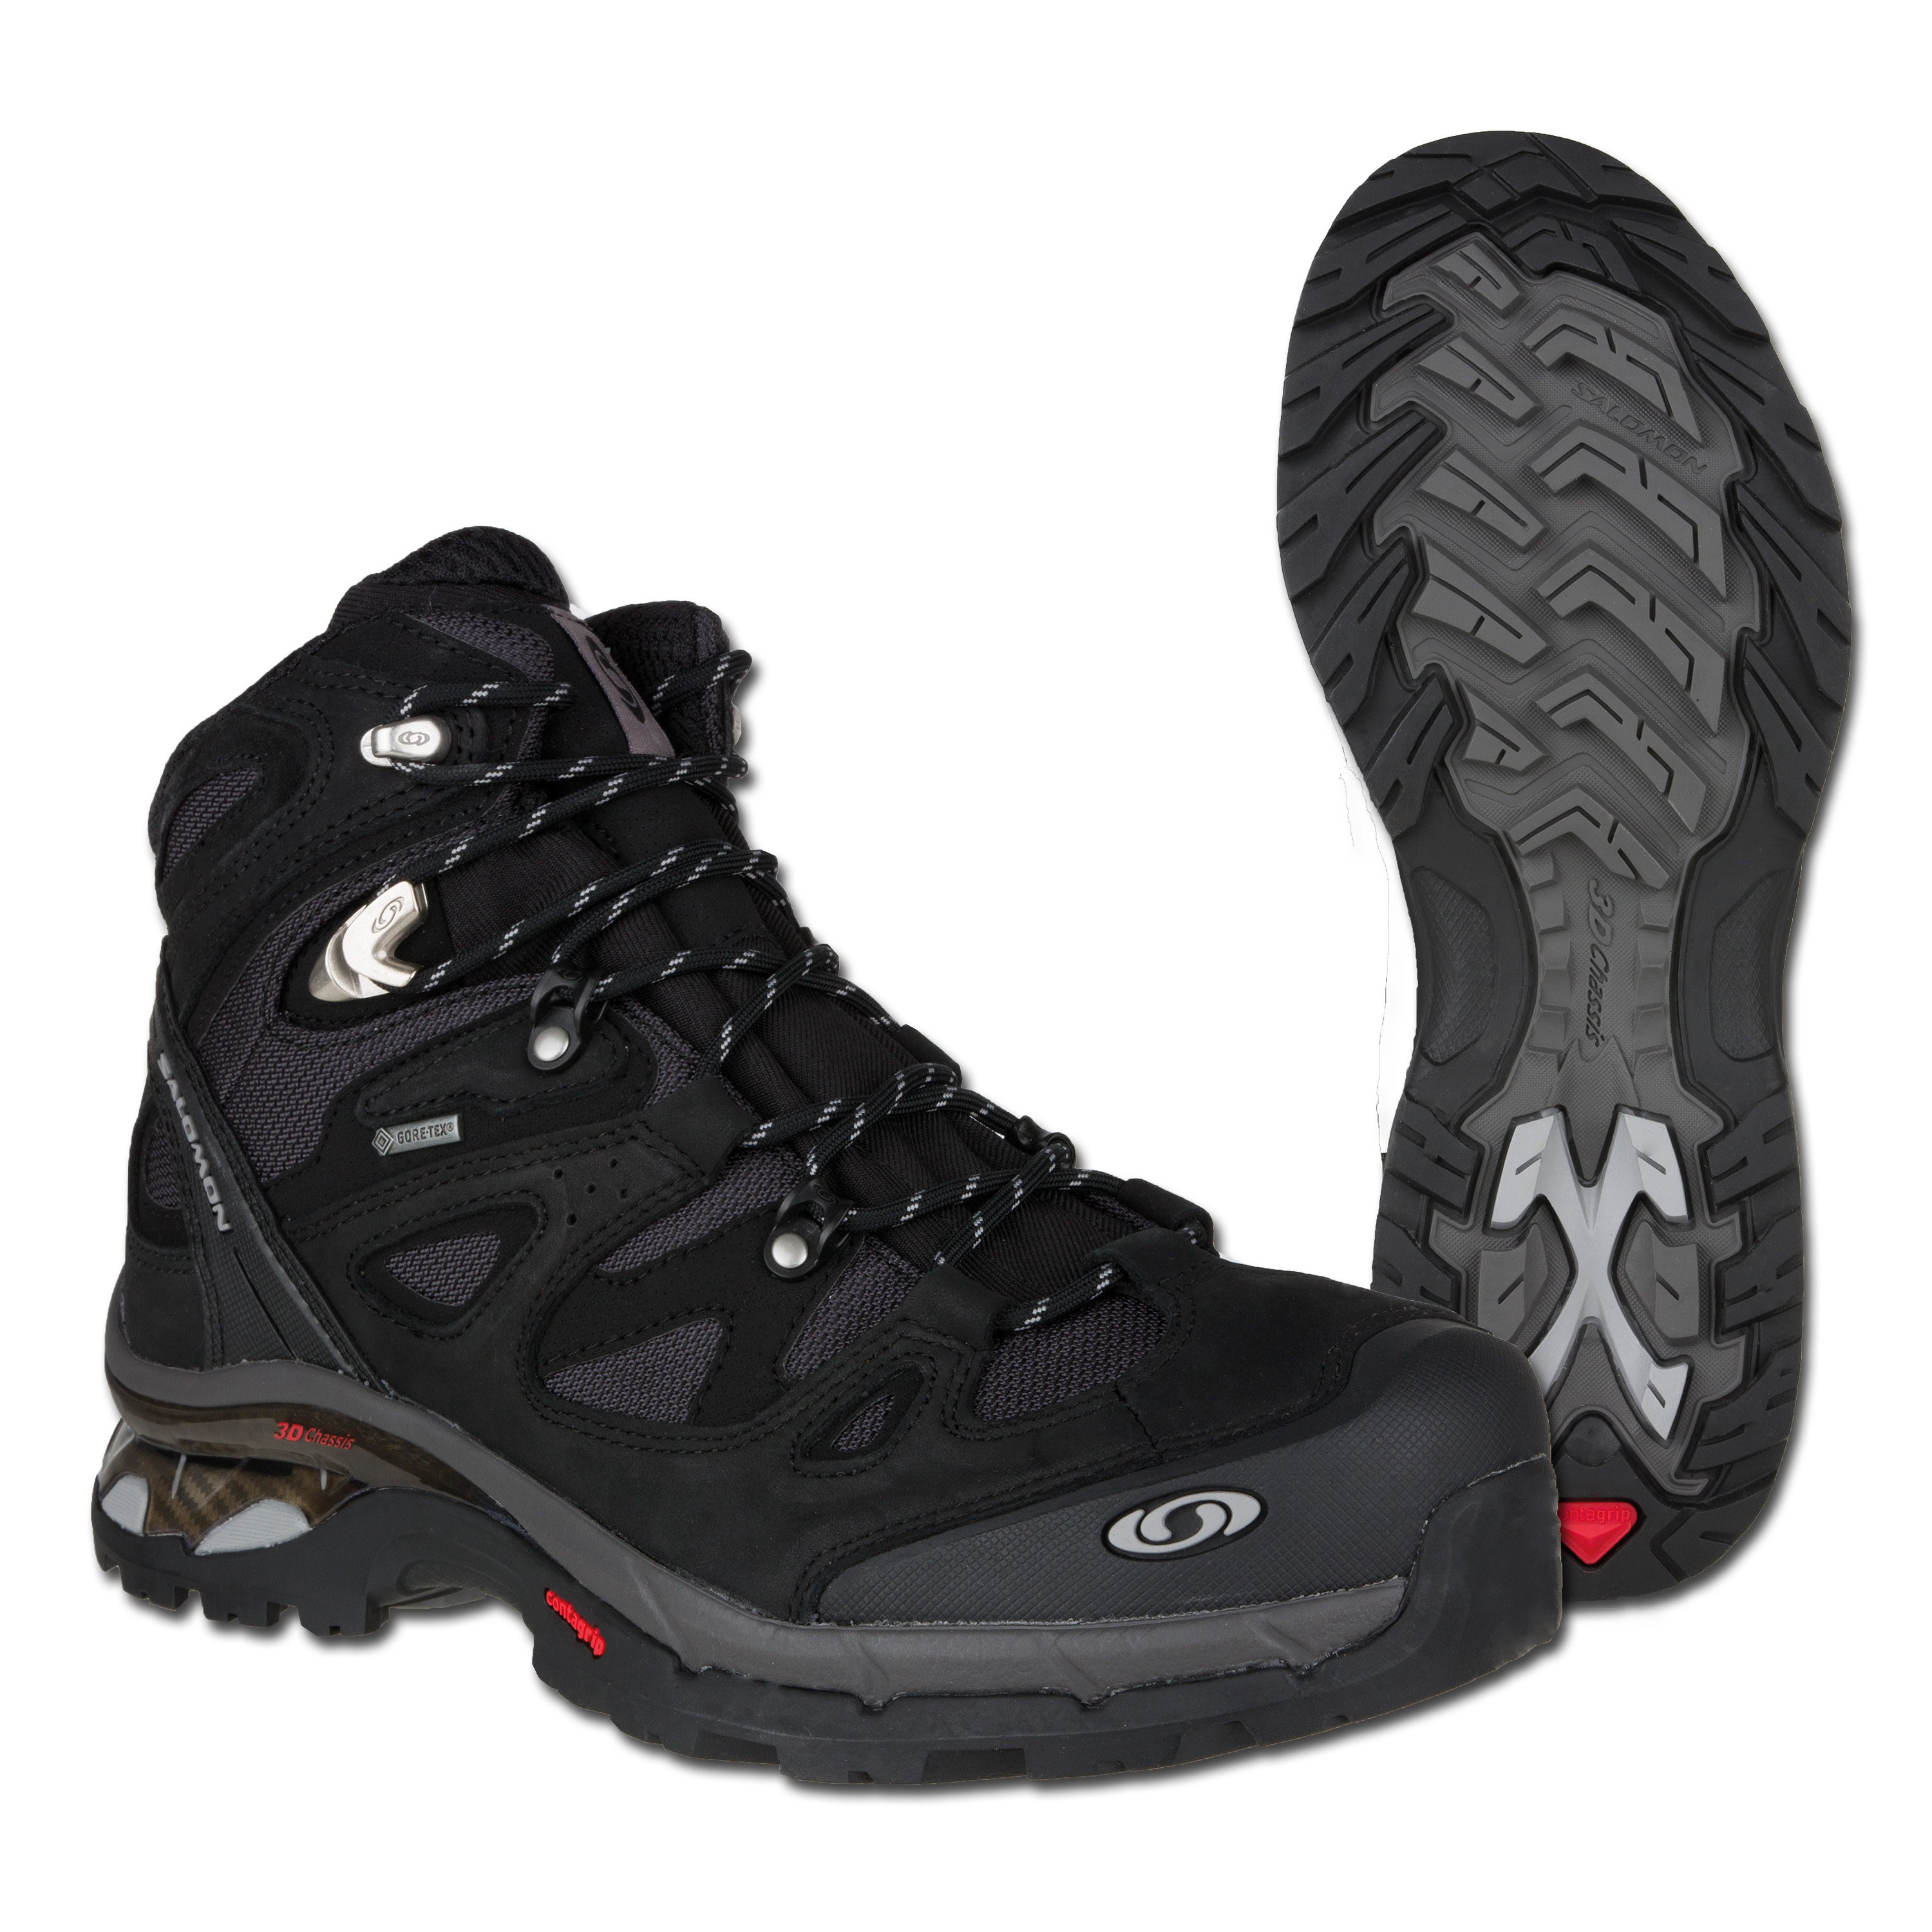 Shoe Salomon Comet 3D GTX black